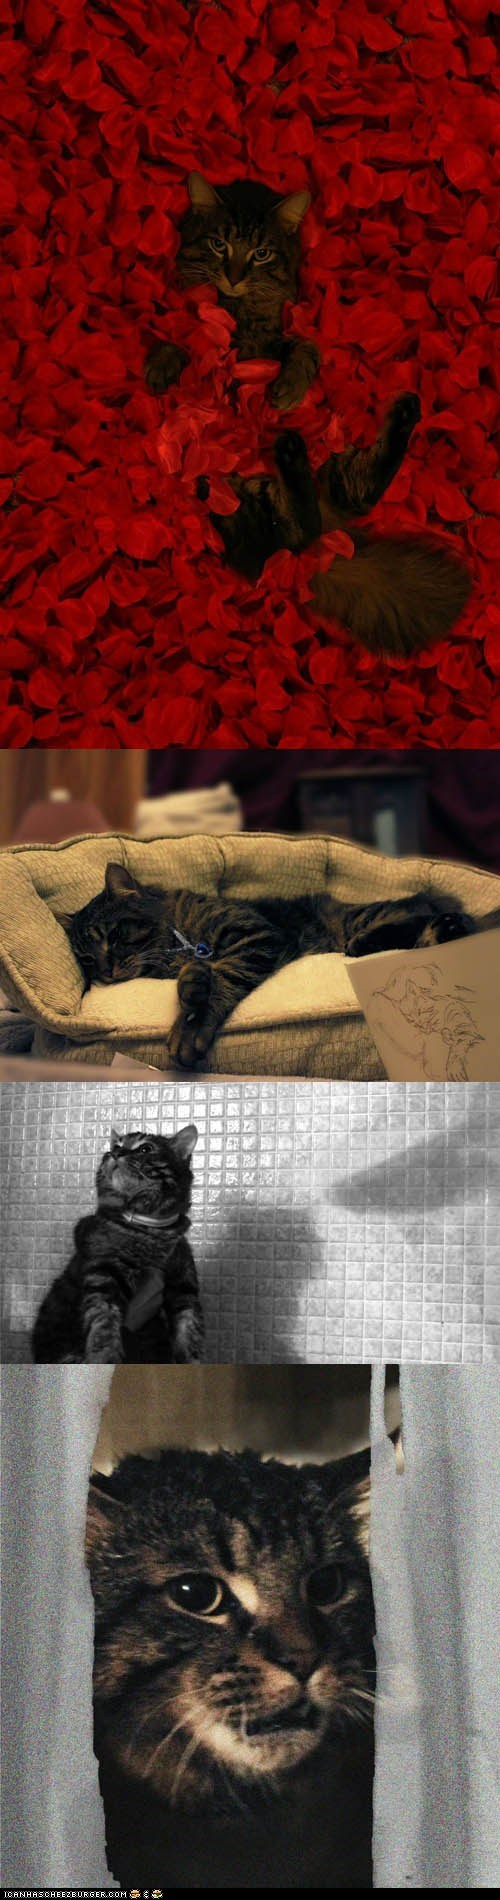 American Beauty,Cats,films,movies,psycho,reenactments,scenes,the shining,titanic